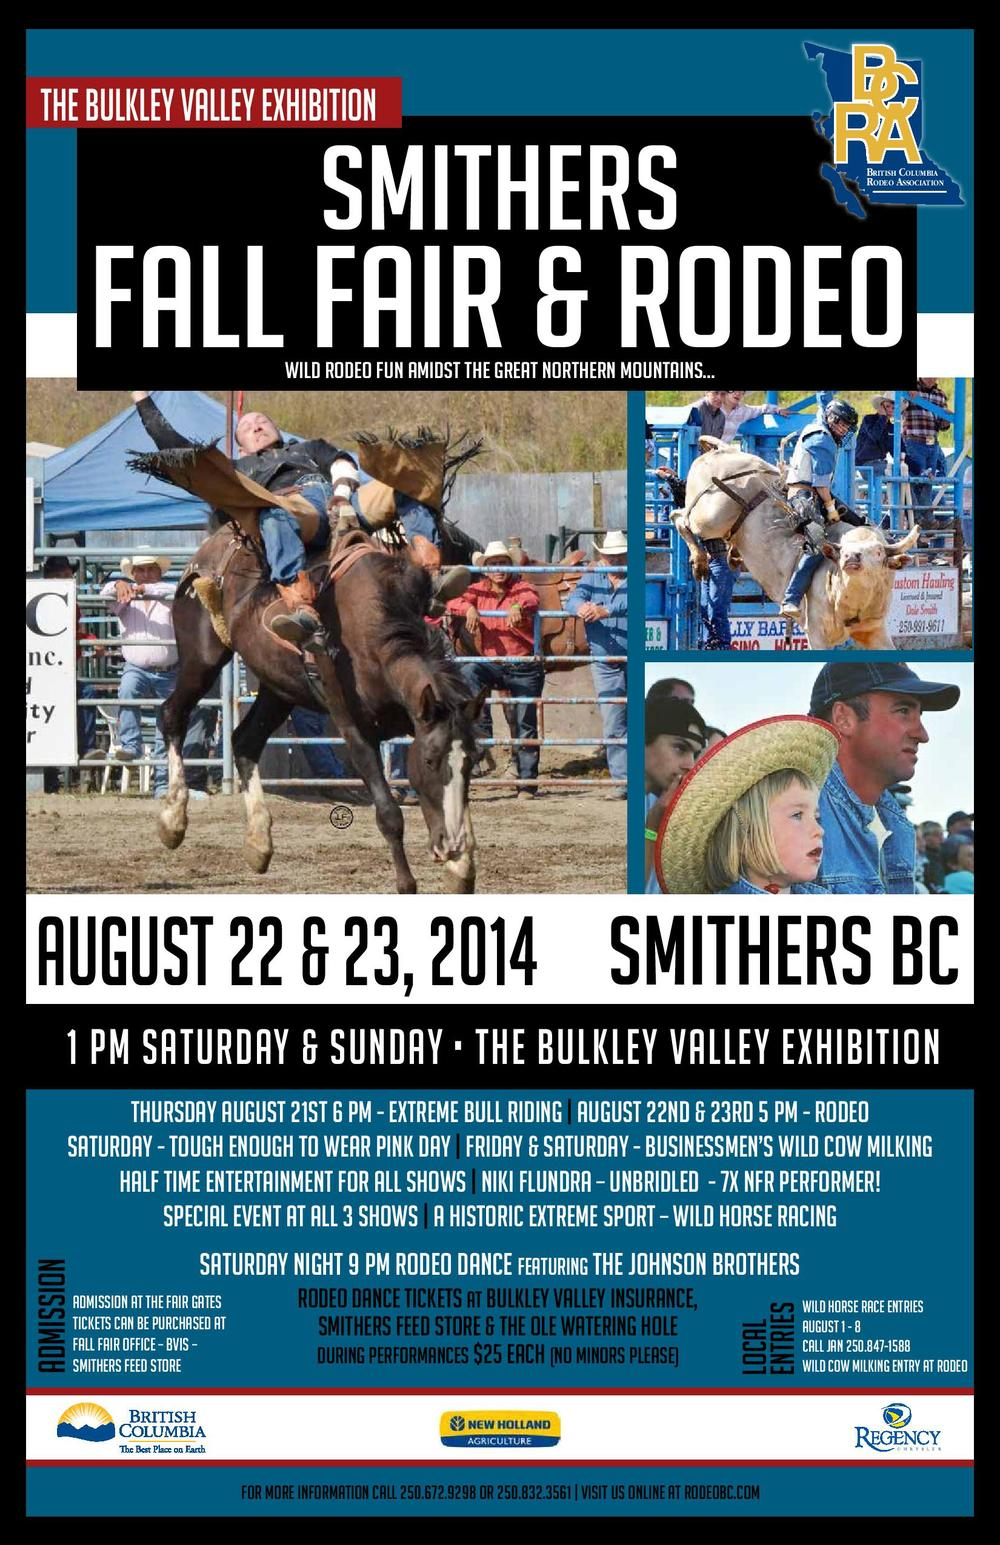 Official 2014  BCRA  Poster for the Smithers Rodeo at the 95th Bulkley Valley Exhibtion.